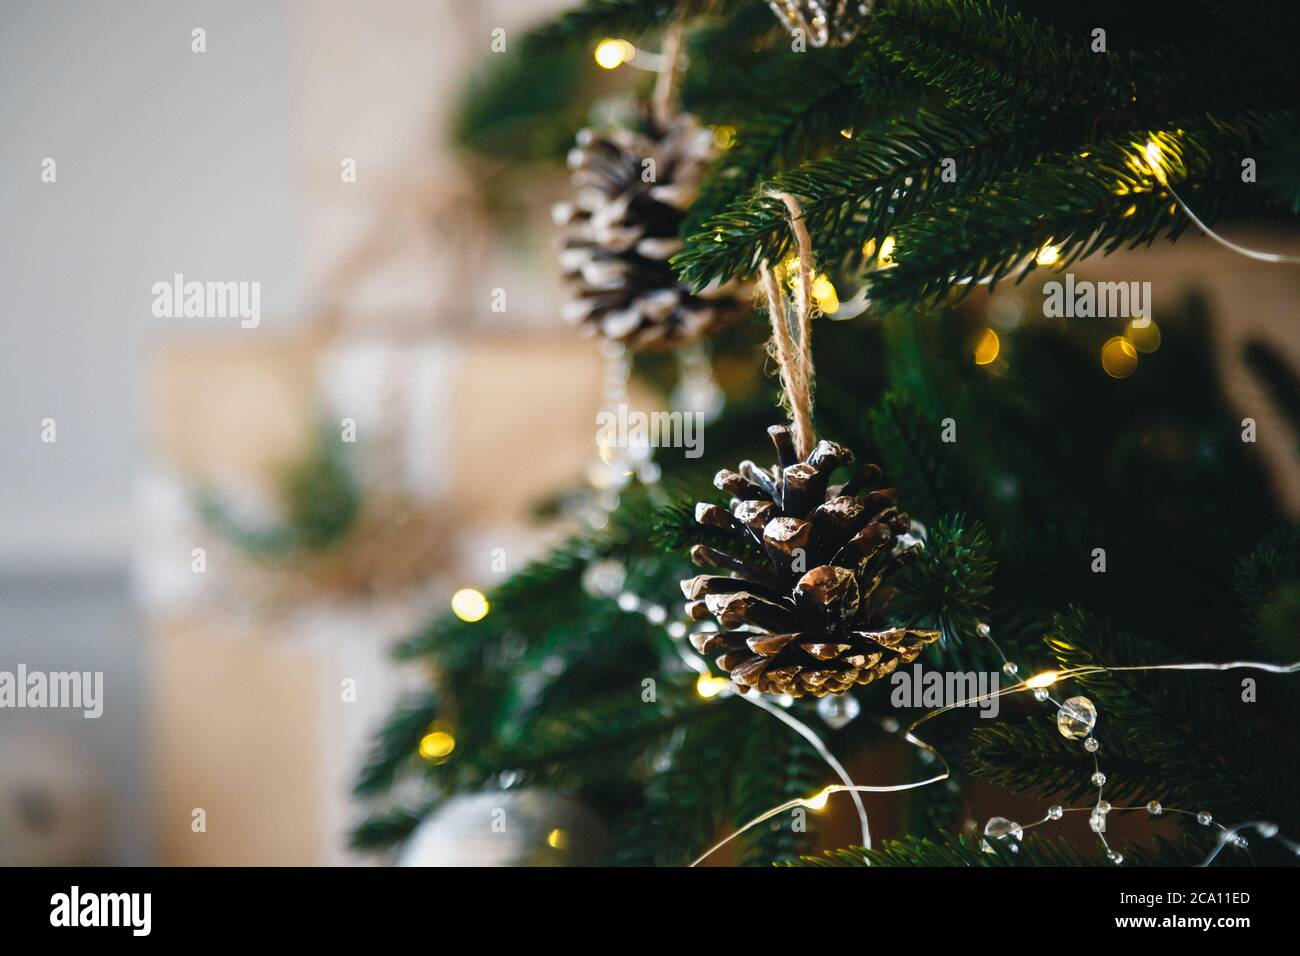 Close Up Of Christmas Tree With Yellow Christmas Lights Toys And Cones Xmas And New Year Concept Stock Photo Alamy